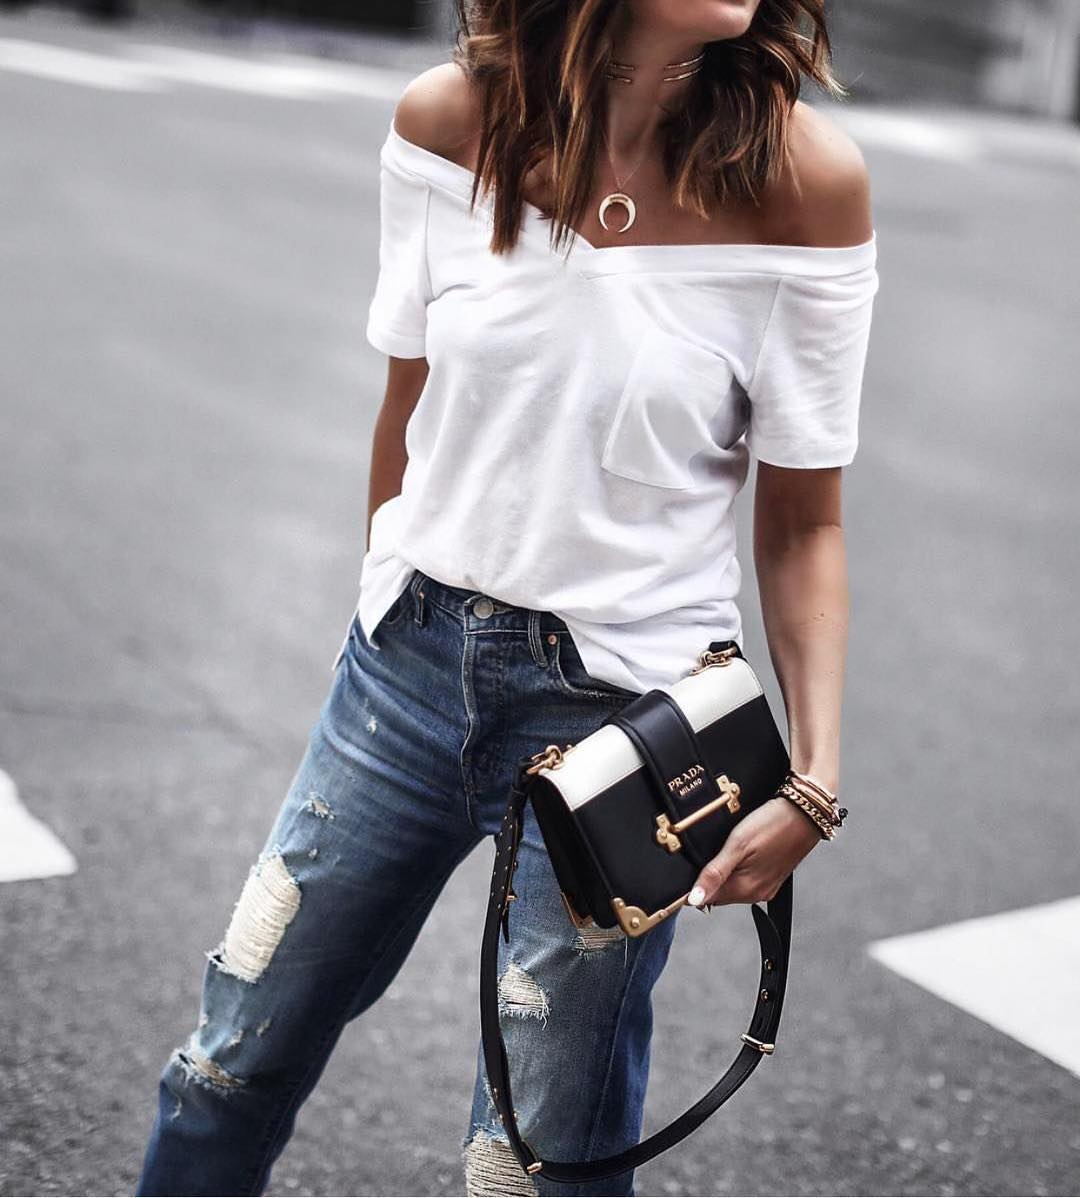 Off Shoulder White Top And Ripped Jeans For Casual Summer 2019